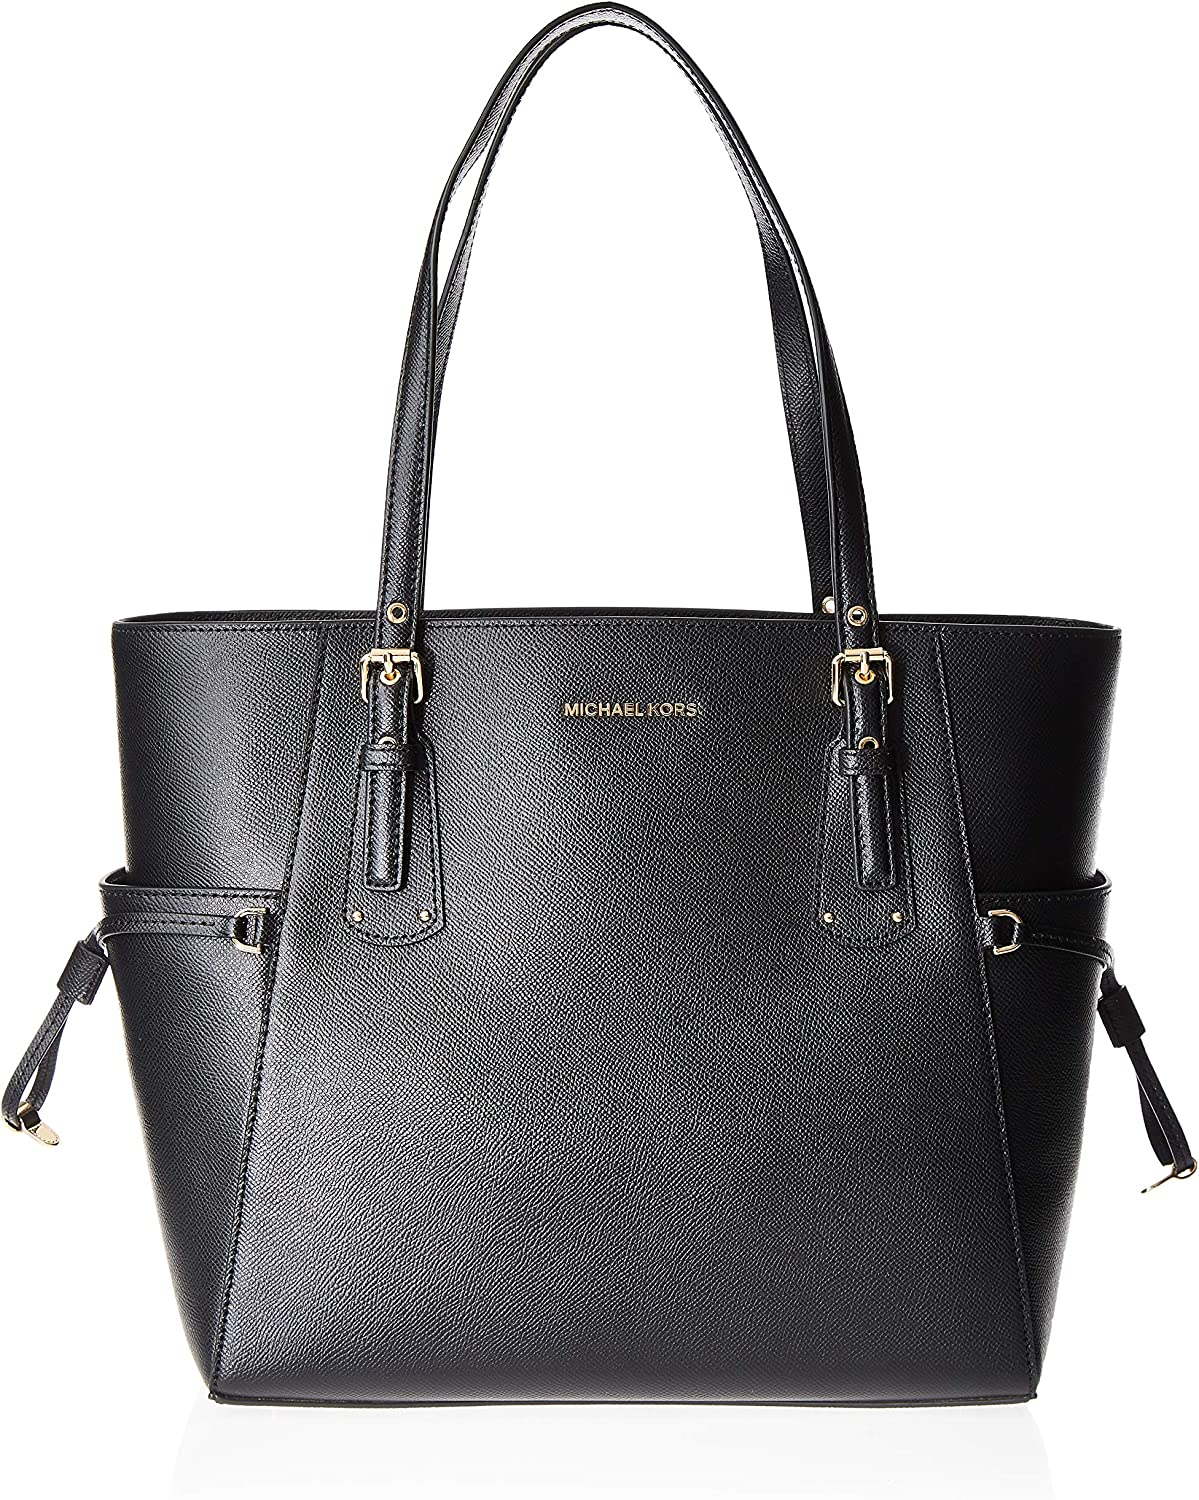 Michael Kors Voyager Crossgrain Leather Totecer Leather Crossbody